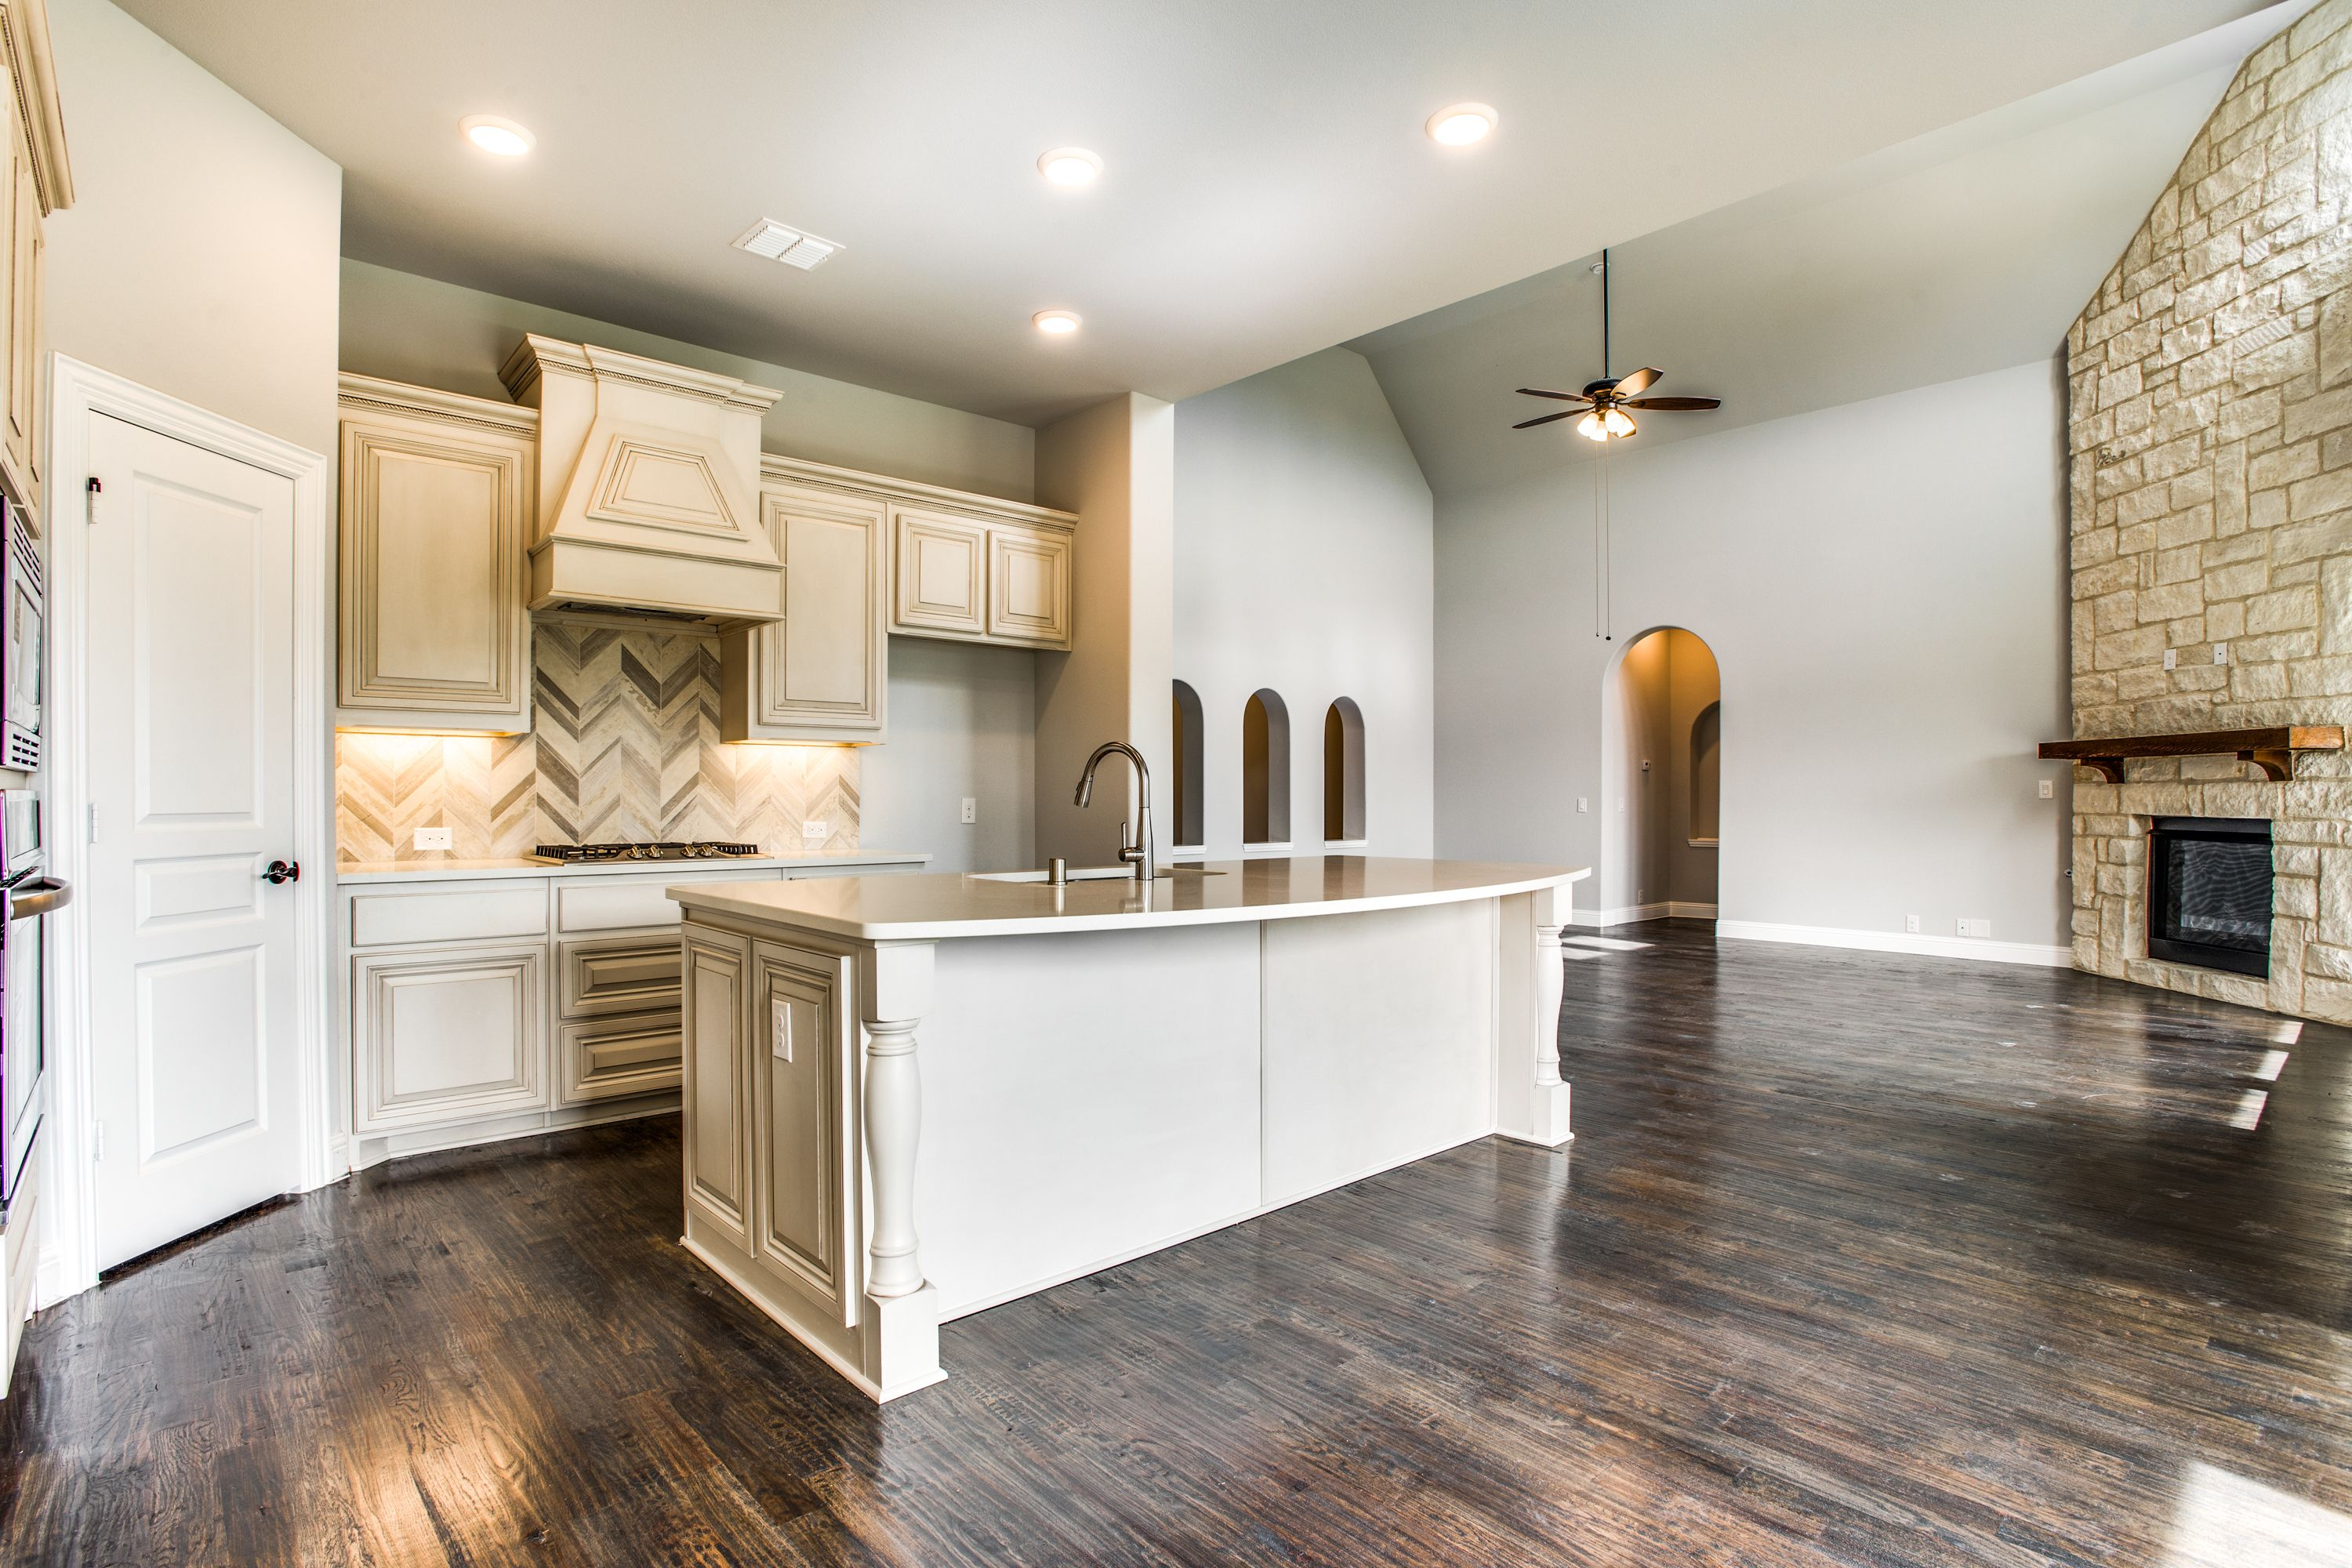 What is your favorite part of this kitchen? I know we can ...